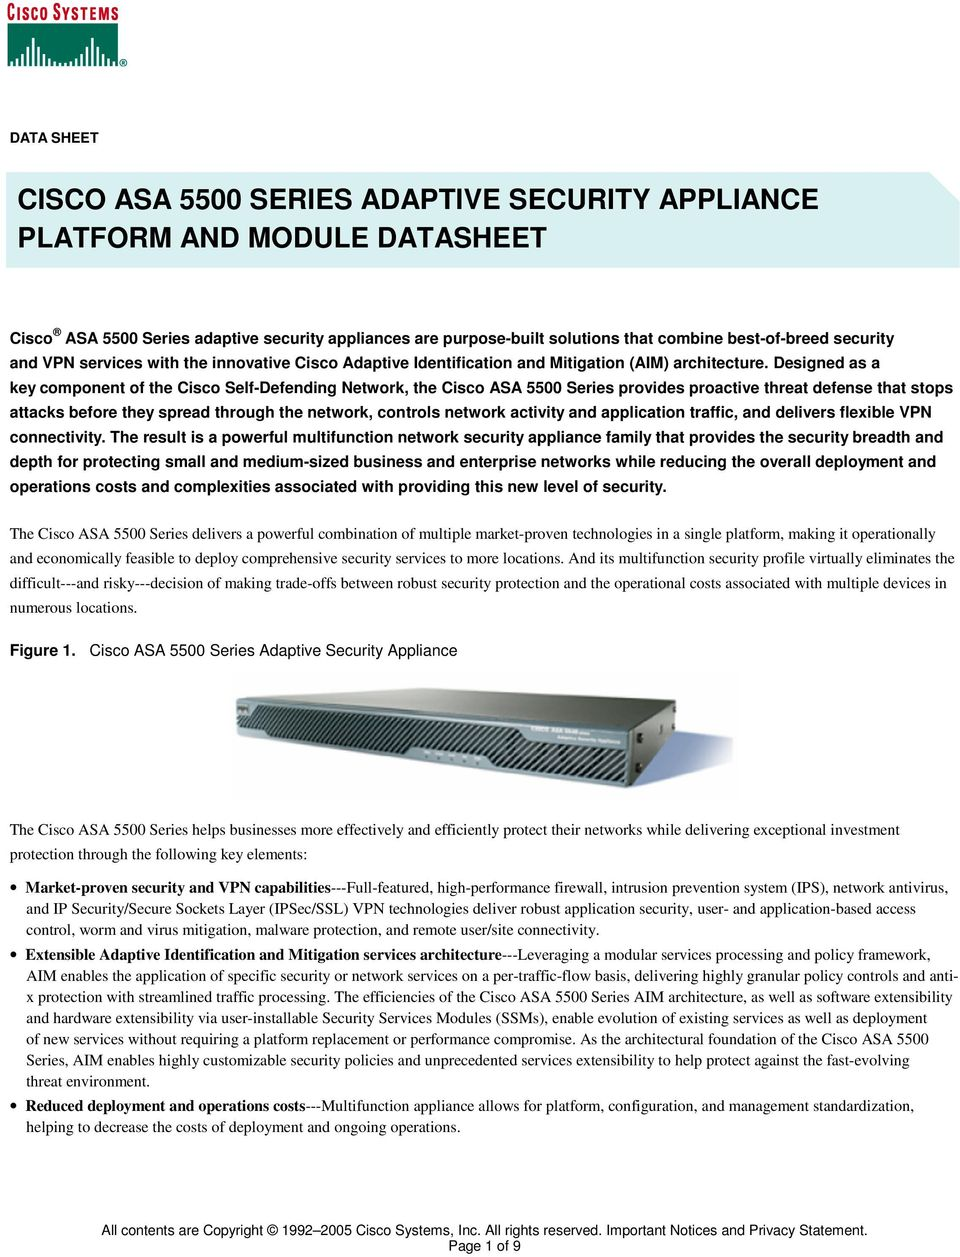 Designed as a key component of the Cisco Self-Defending Network, the Cisco ASA 5500 Series provides proactive threat defense that stops attacks before they spread through the network, controls